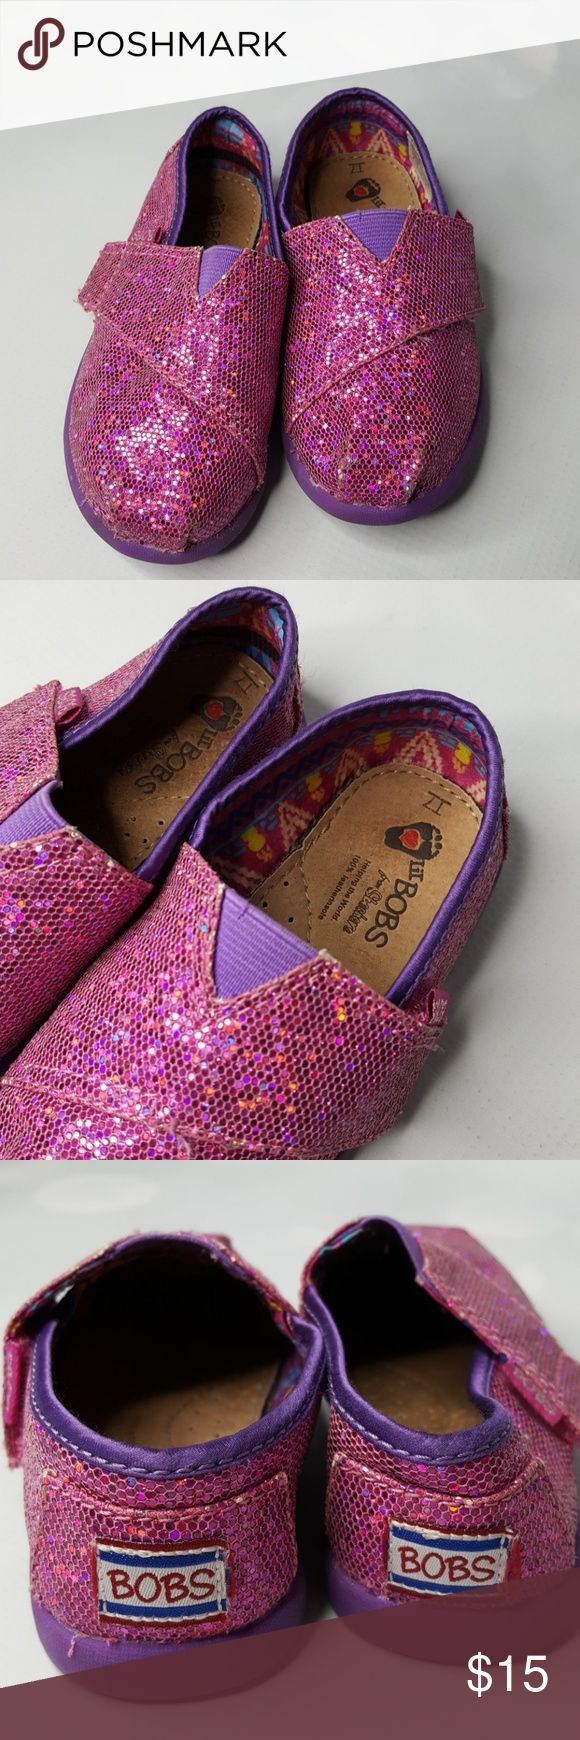 Bob's pink girly shoes (by skechers) Pink glittery shoes for little girls Skechers Shoes